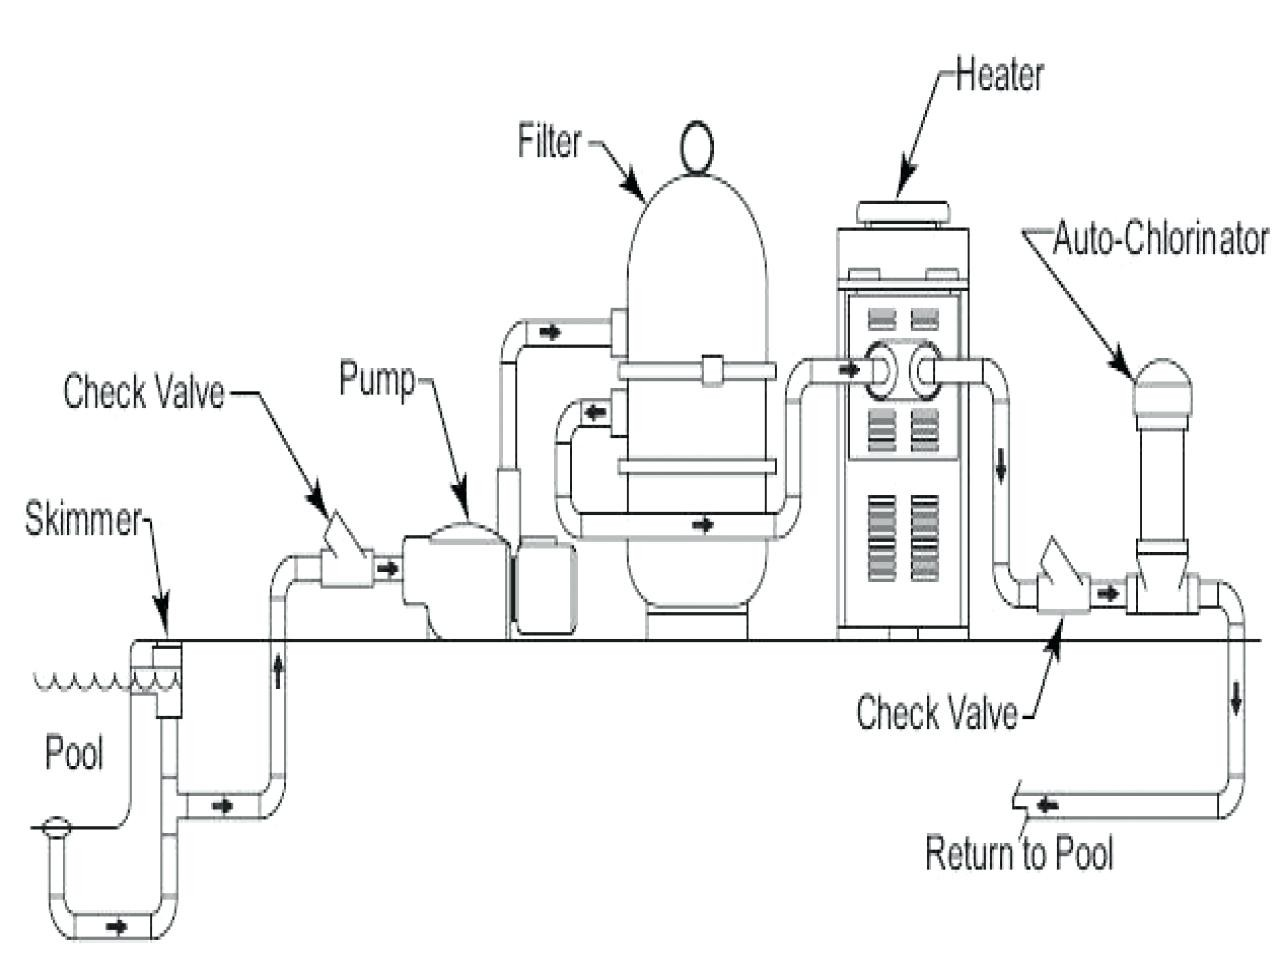 related with control wiring diagram wiki